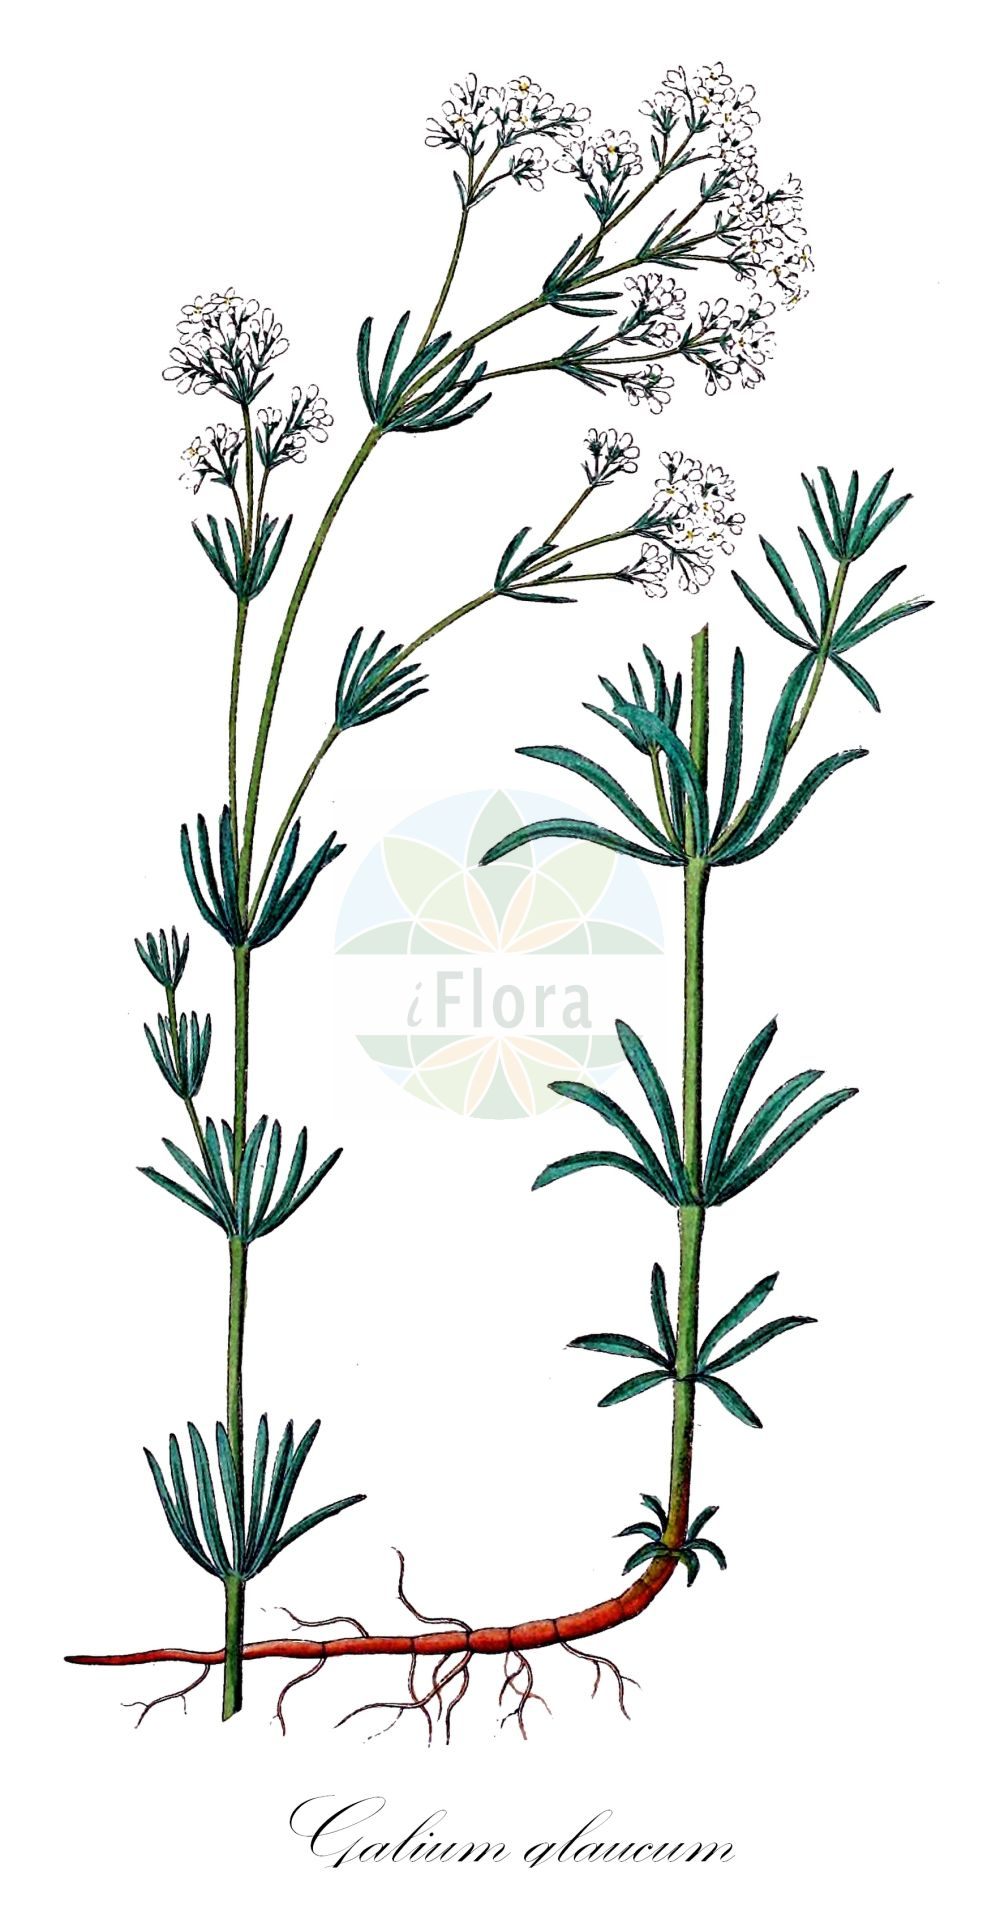 Historische Abbildung von Galium glaucum (Blaugruenes Labkraut - Glaucous Bedstraw). Das Bild zeigt Blatt, Bluete, Frucht und Same. ---- Historical Drawing of Galium glaucum (Blaugruenes Labkraut - Glaucous Bedstraw).The image is showing leaf, flower, fruit and seed.(Galium glaucum,Blaugruenes Labkraut,Glaucous Bedstraw,Asperula campanulata,Asperula galioides,Asperula glauca,Asperula glauca (L.) Besser,Galium campanulatum,subsp. tyracium,Waxy Bedstraw,Galium,Labkraut,Bedstraw,Rubiaceae,Roetegewaechse;Kaffeegewaechse;Krappgewaechse;Labkrautgewaechse,Bedstraw family,Blatt,Bluete,Frucht,Same,leaf,flower,fruit,seed,Dietrich (1833-1844))